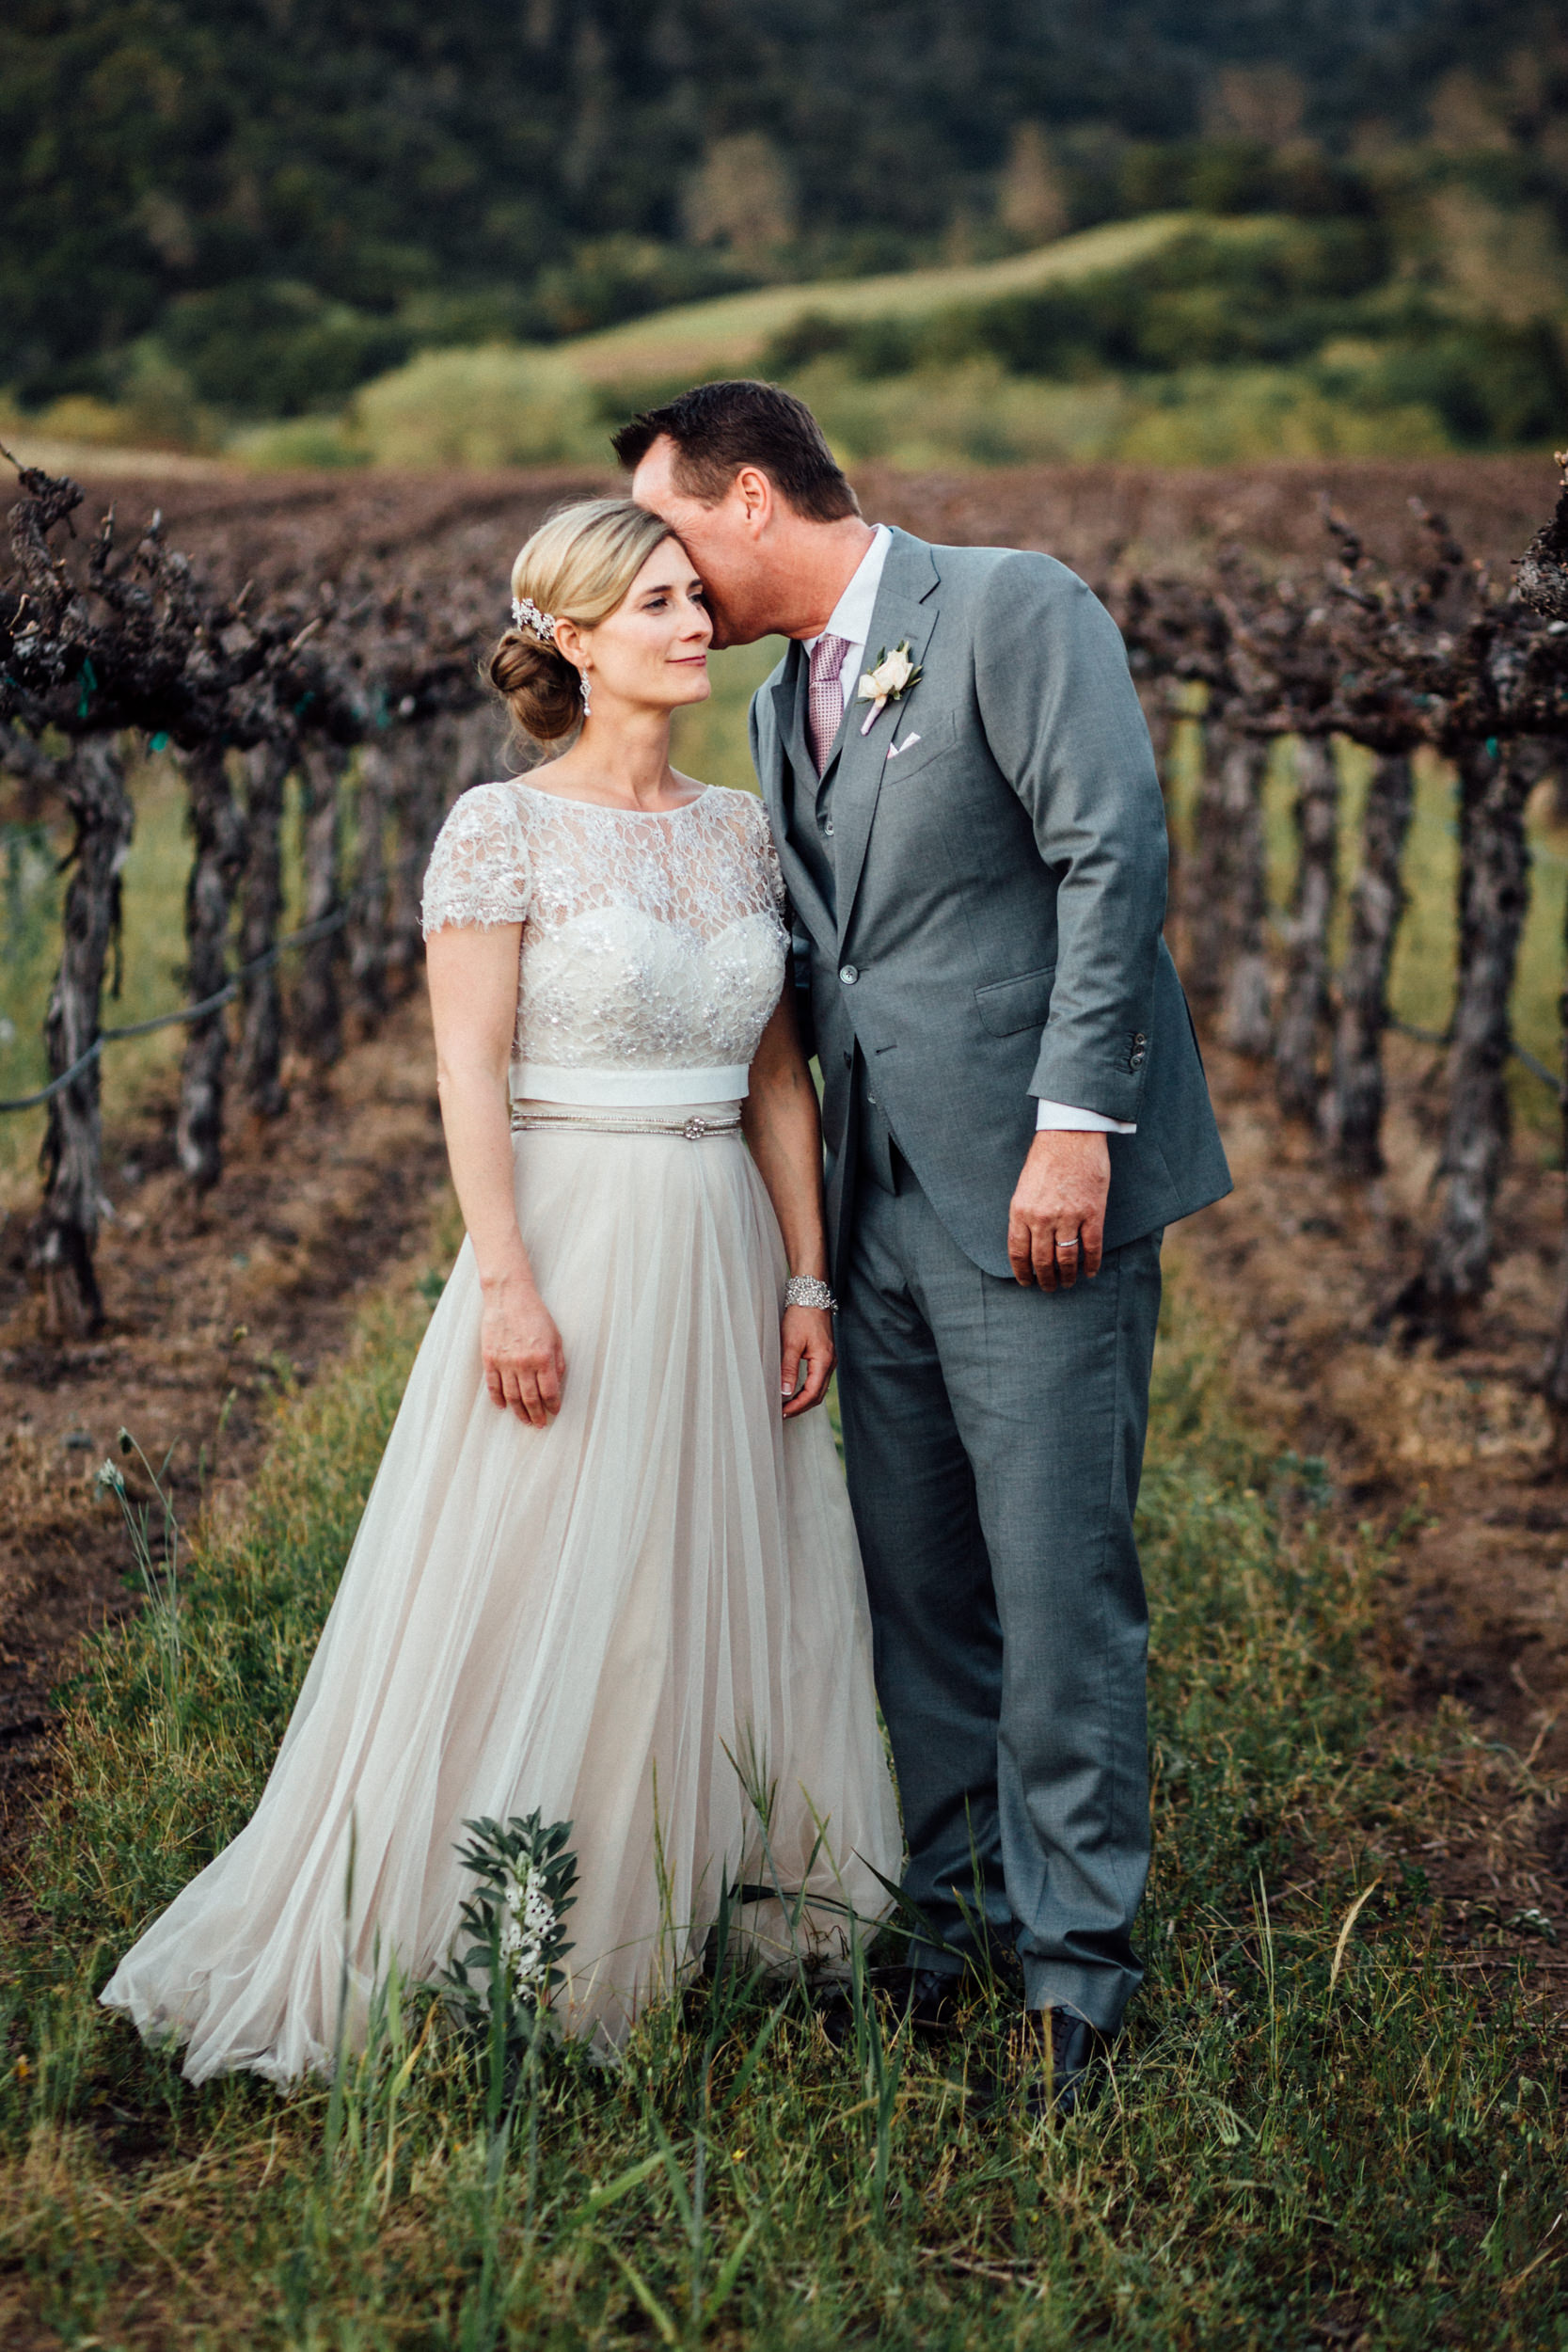 Groom whispering to bride in vineyard